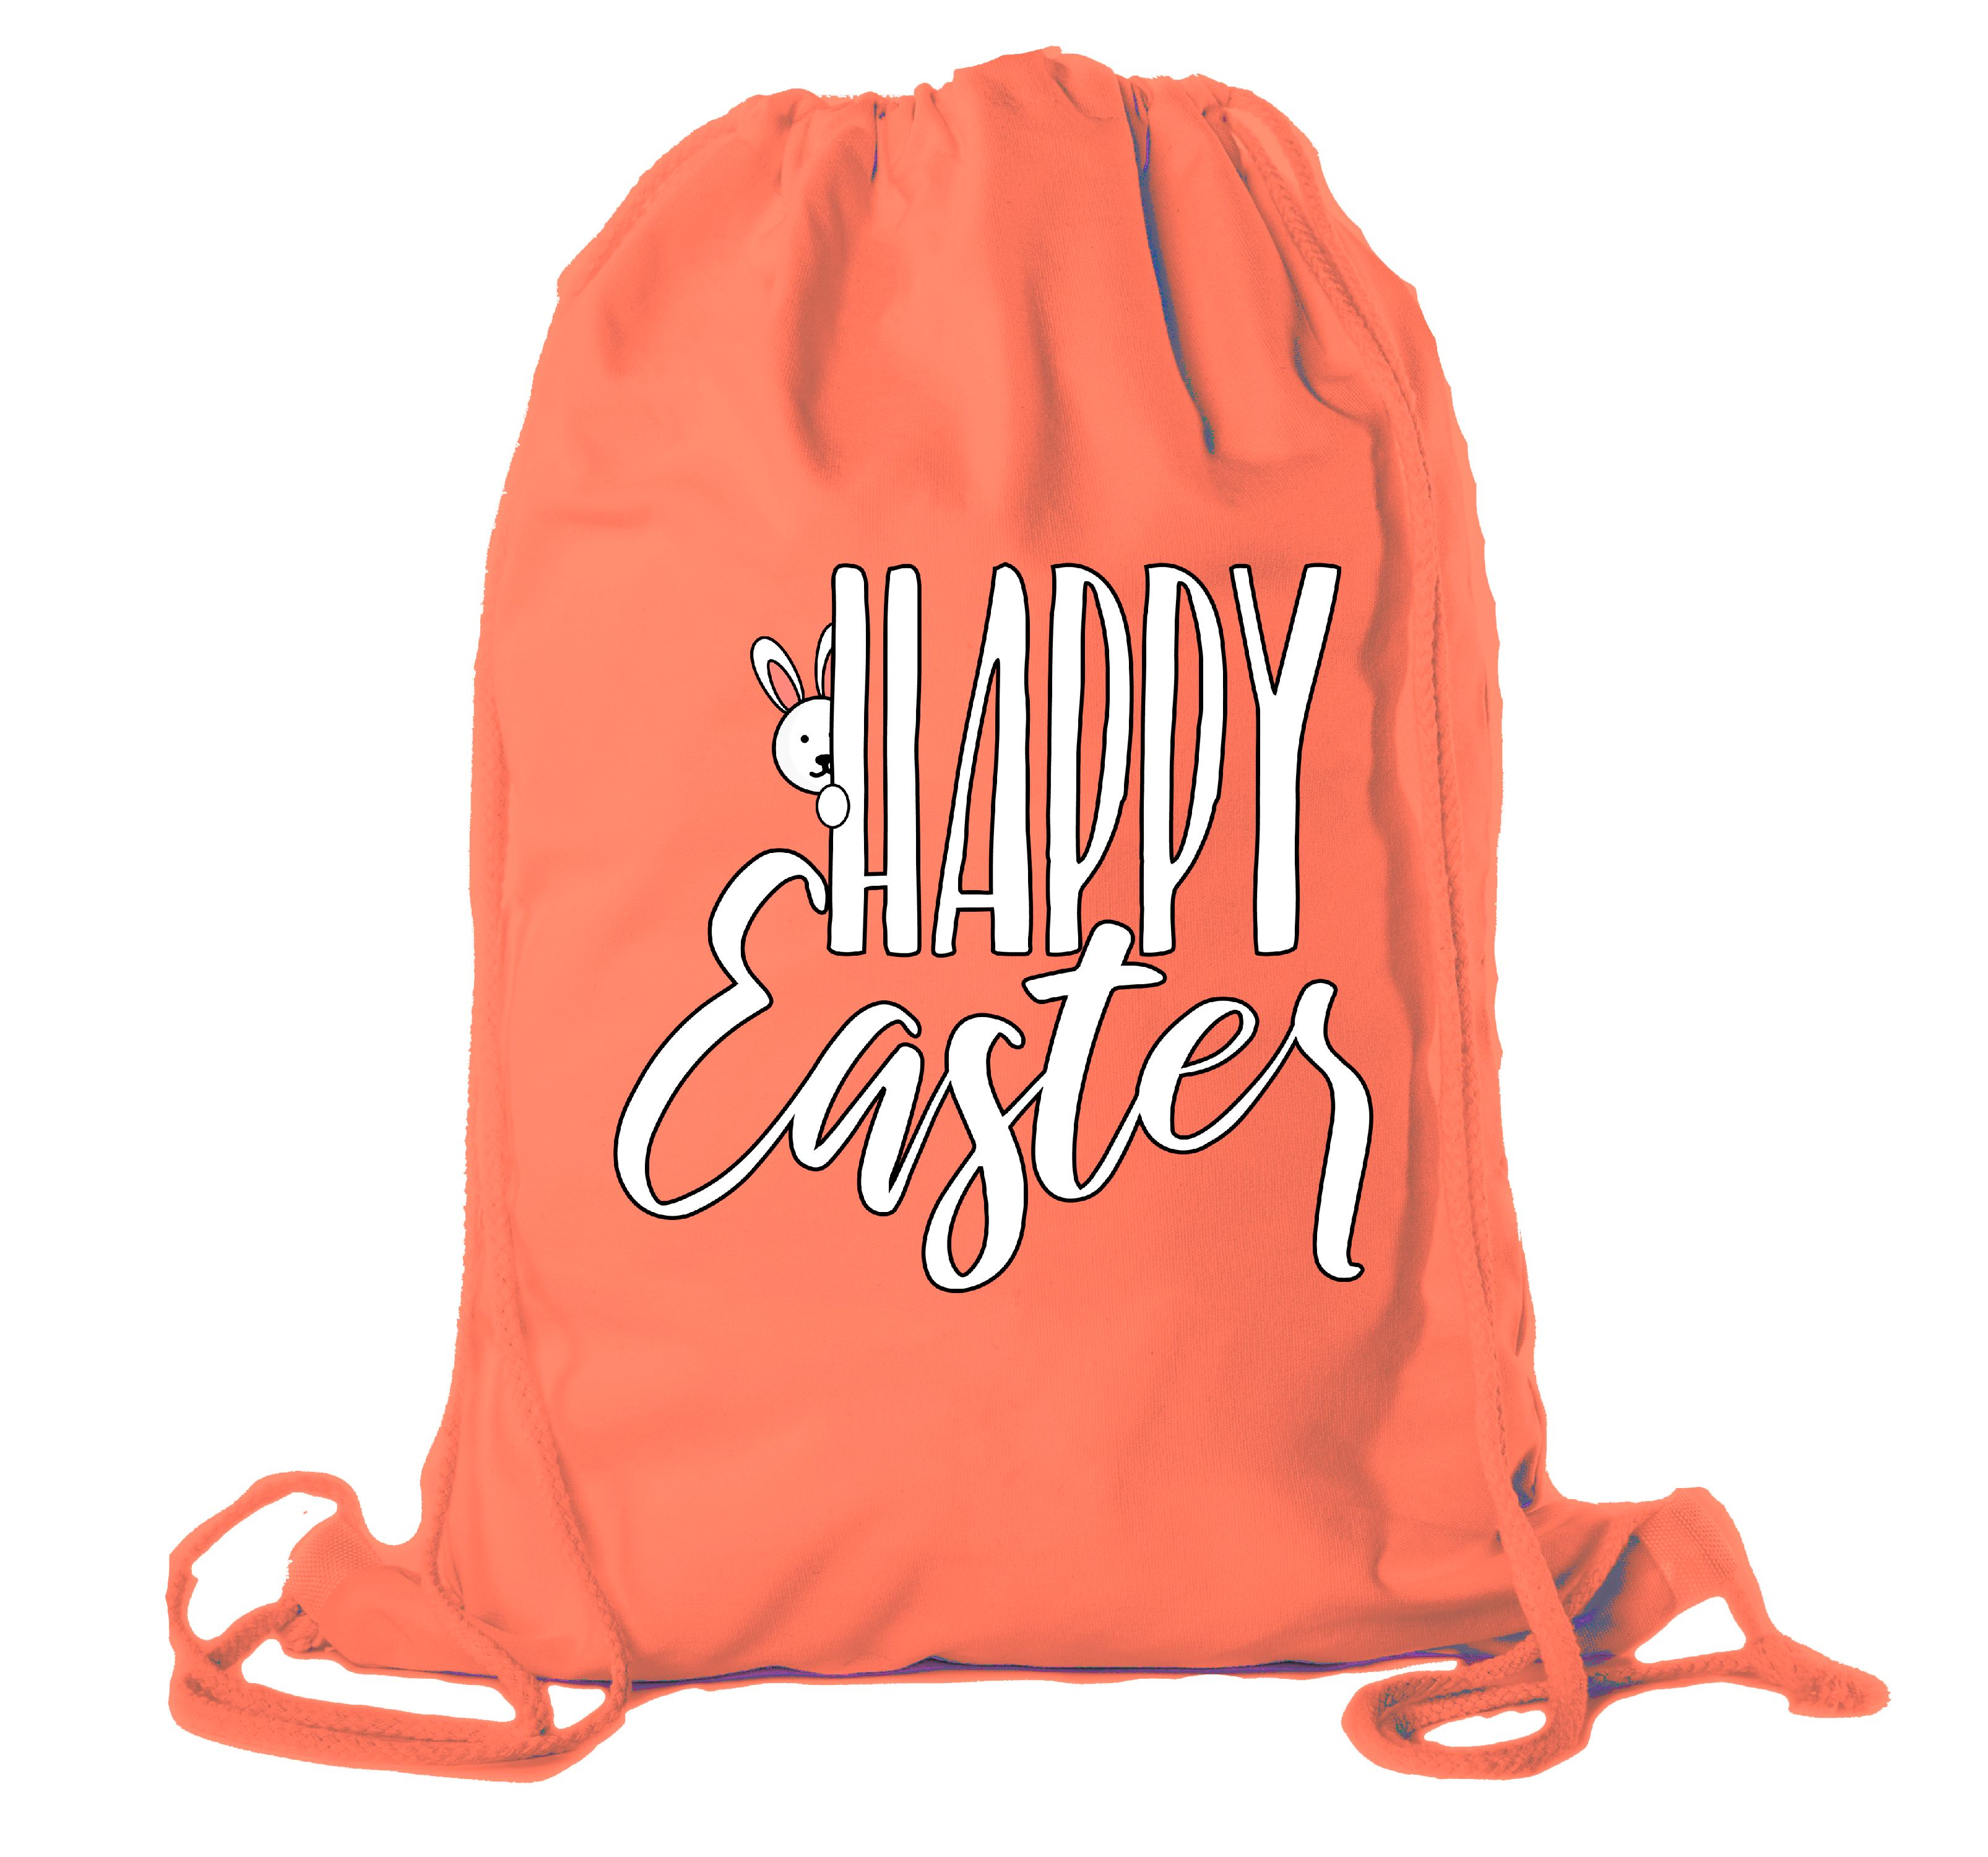 Easter Basket Backpack Bulk Cotton Drawstring Cinch Bags Easter Bunny Gift Bags - Peaking Bunny